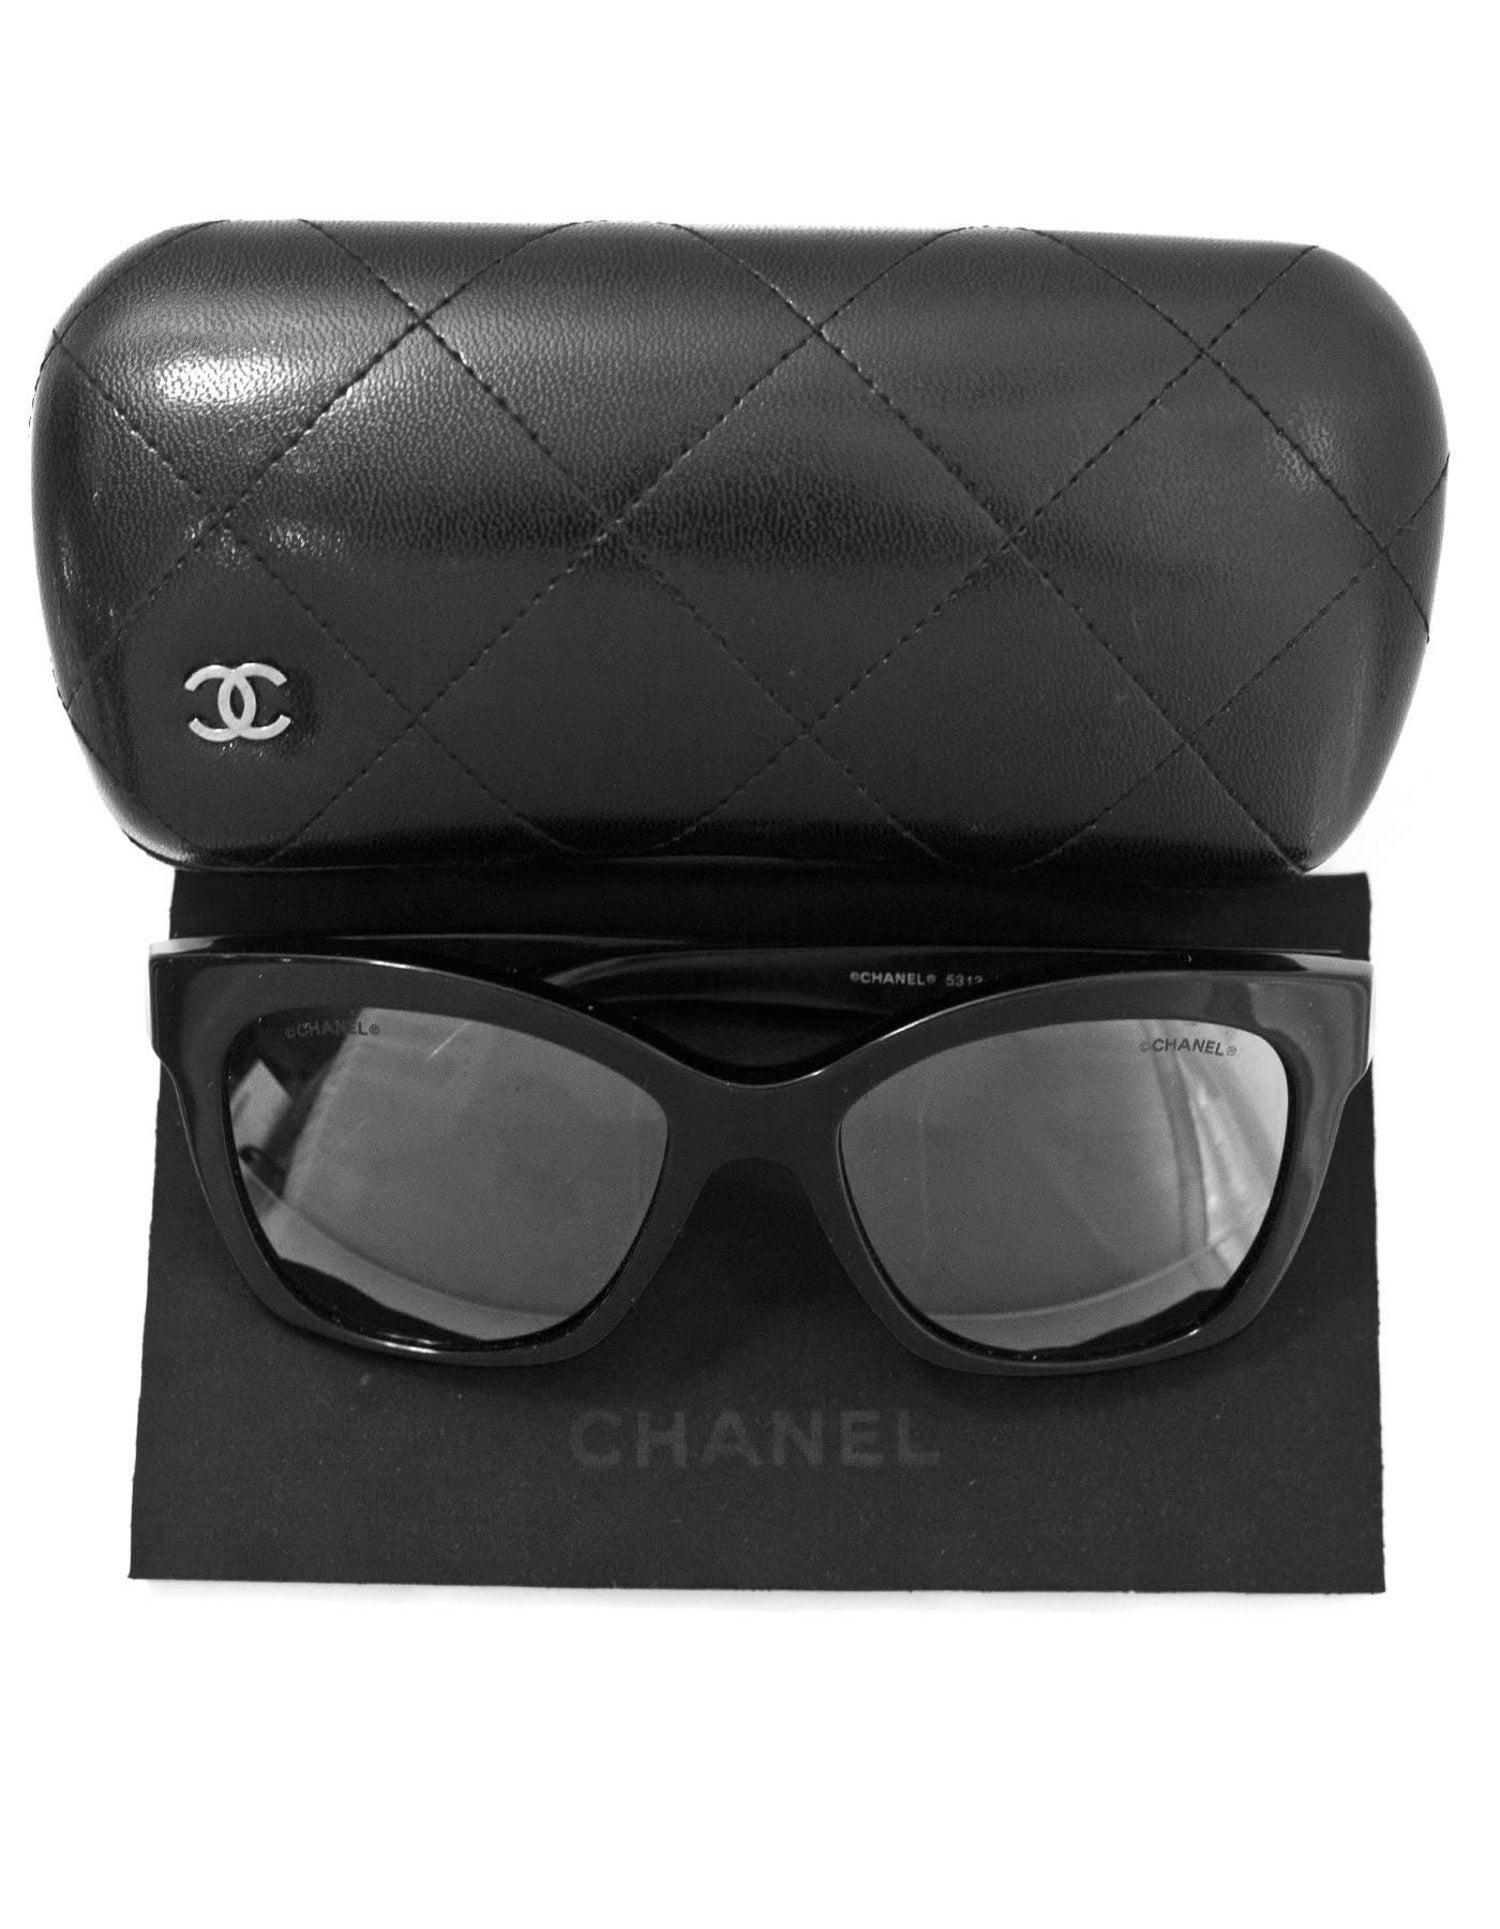 09ff45e3bbadb Chanel Black Pantos Spring CC Lego Mirrored Sunglasses with Case For Sale at  1stdibs